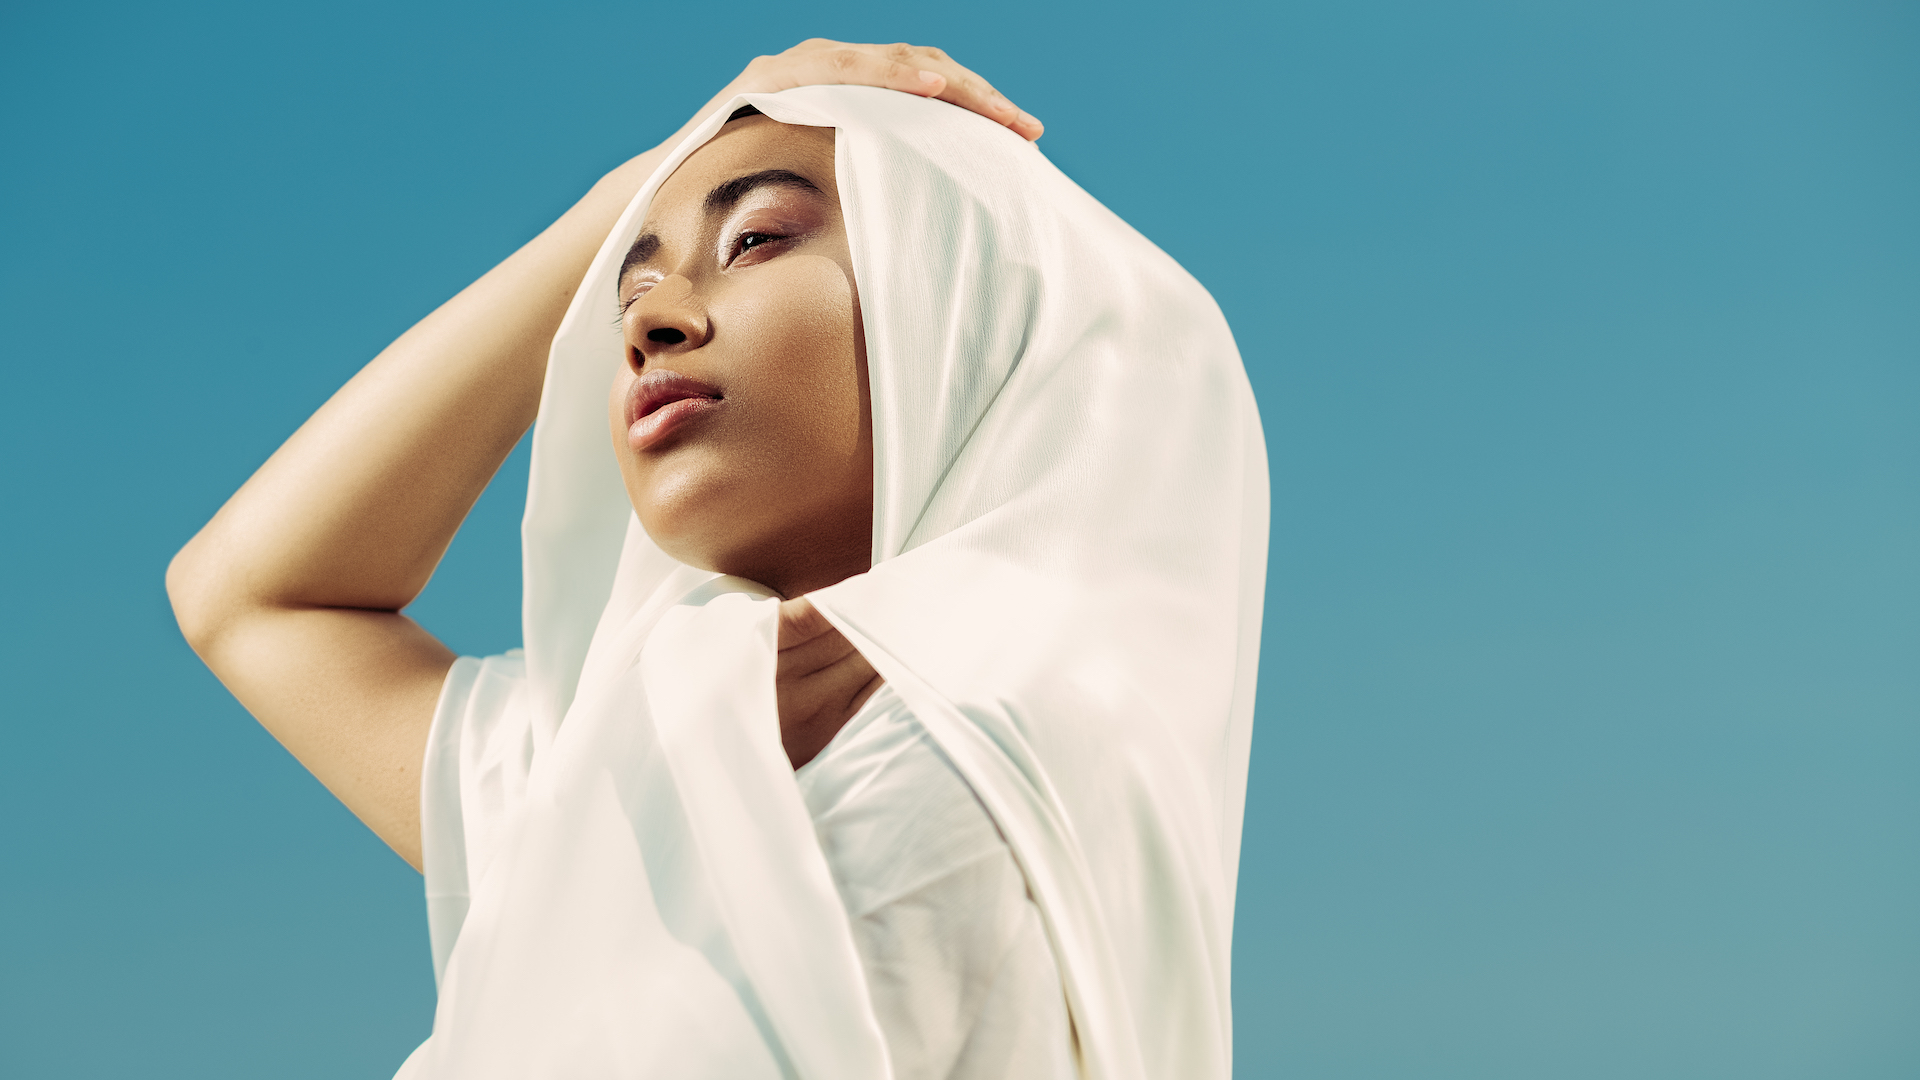 500px Commercial Grants: Intersectional Diversity